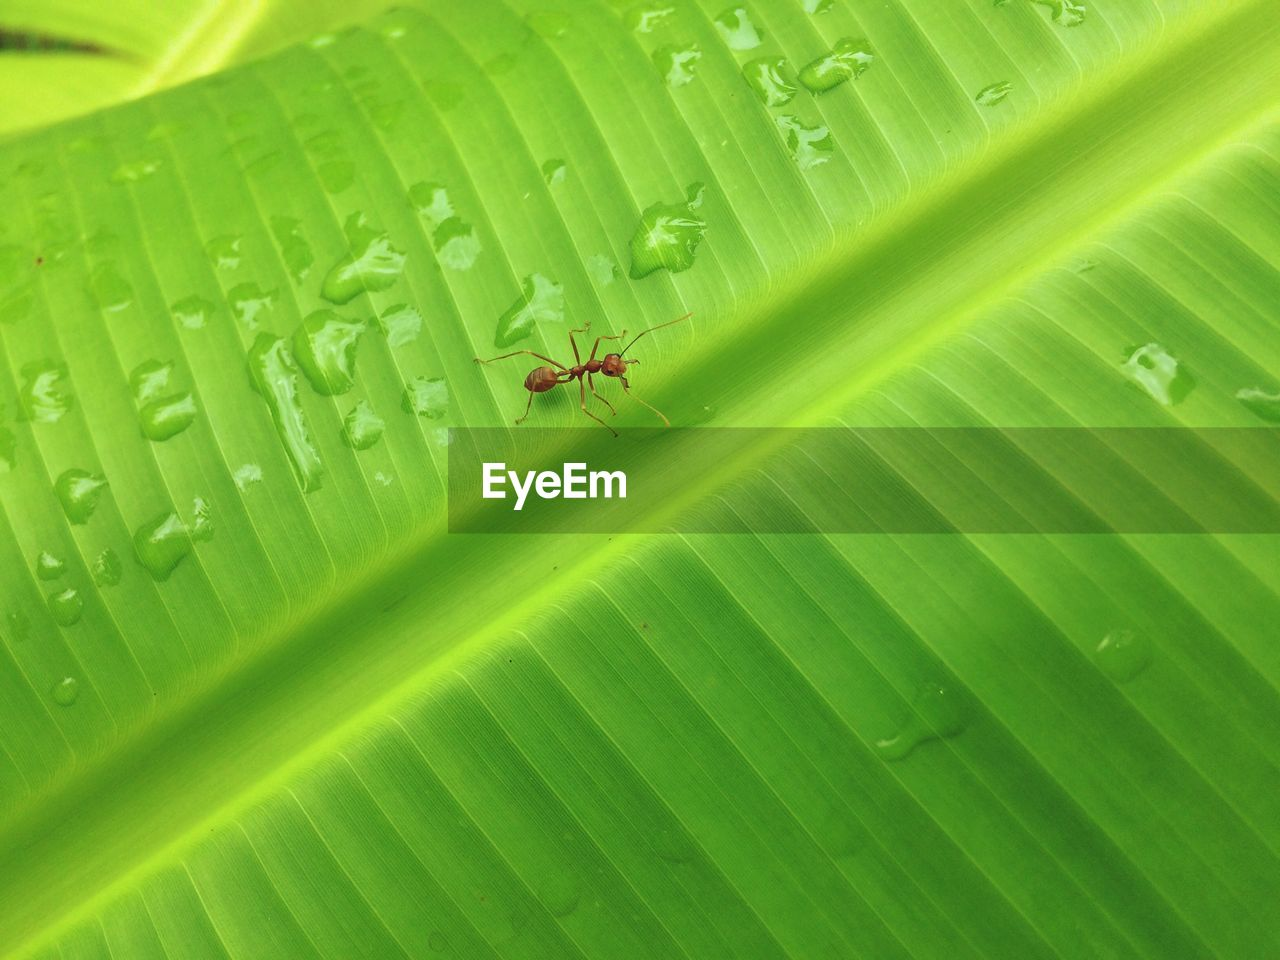 Close-Up Of Red Ant On Wet Leaf